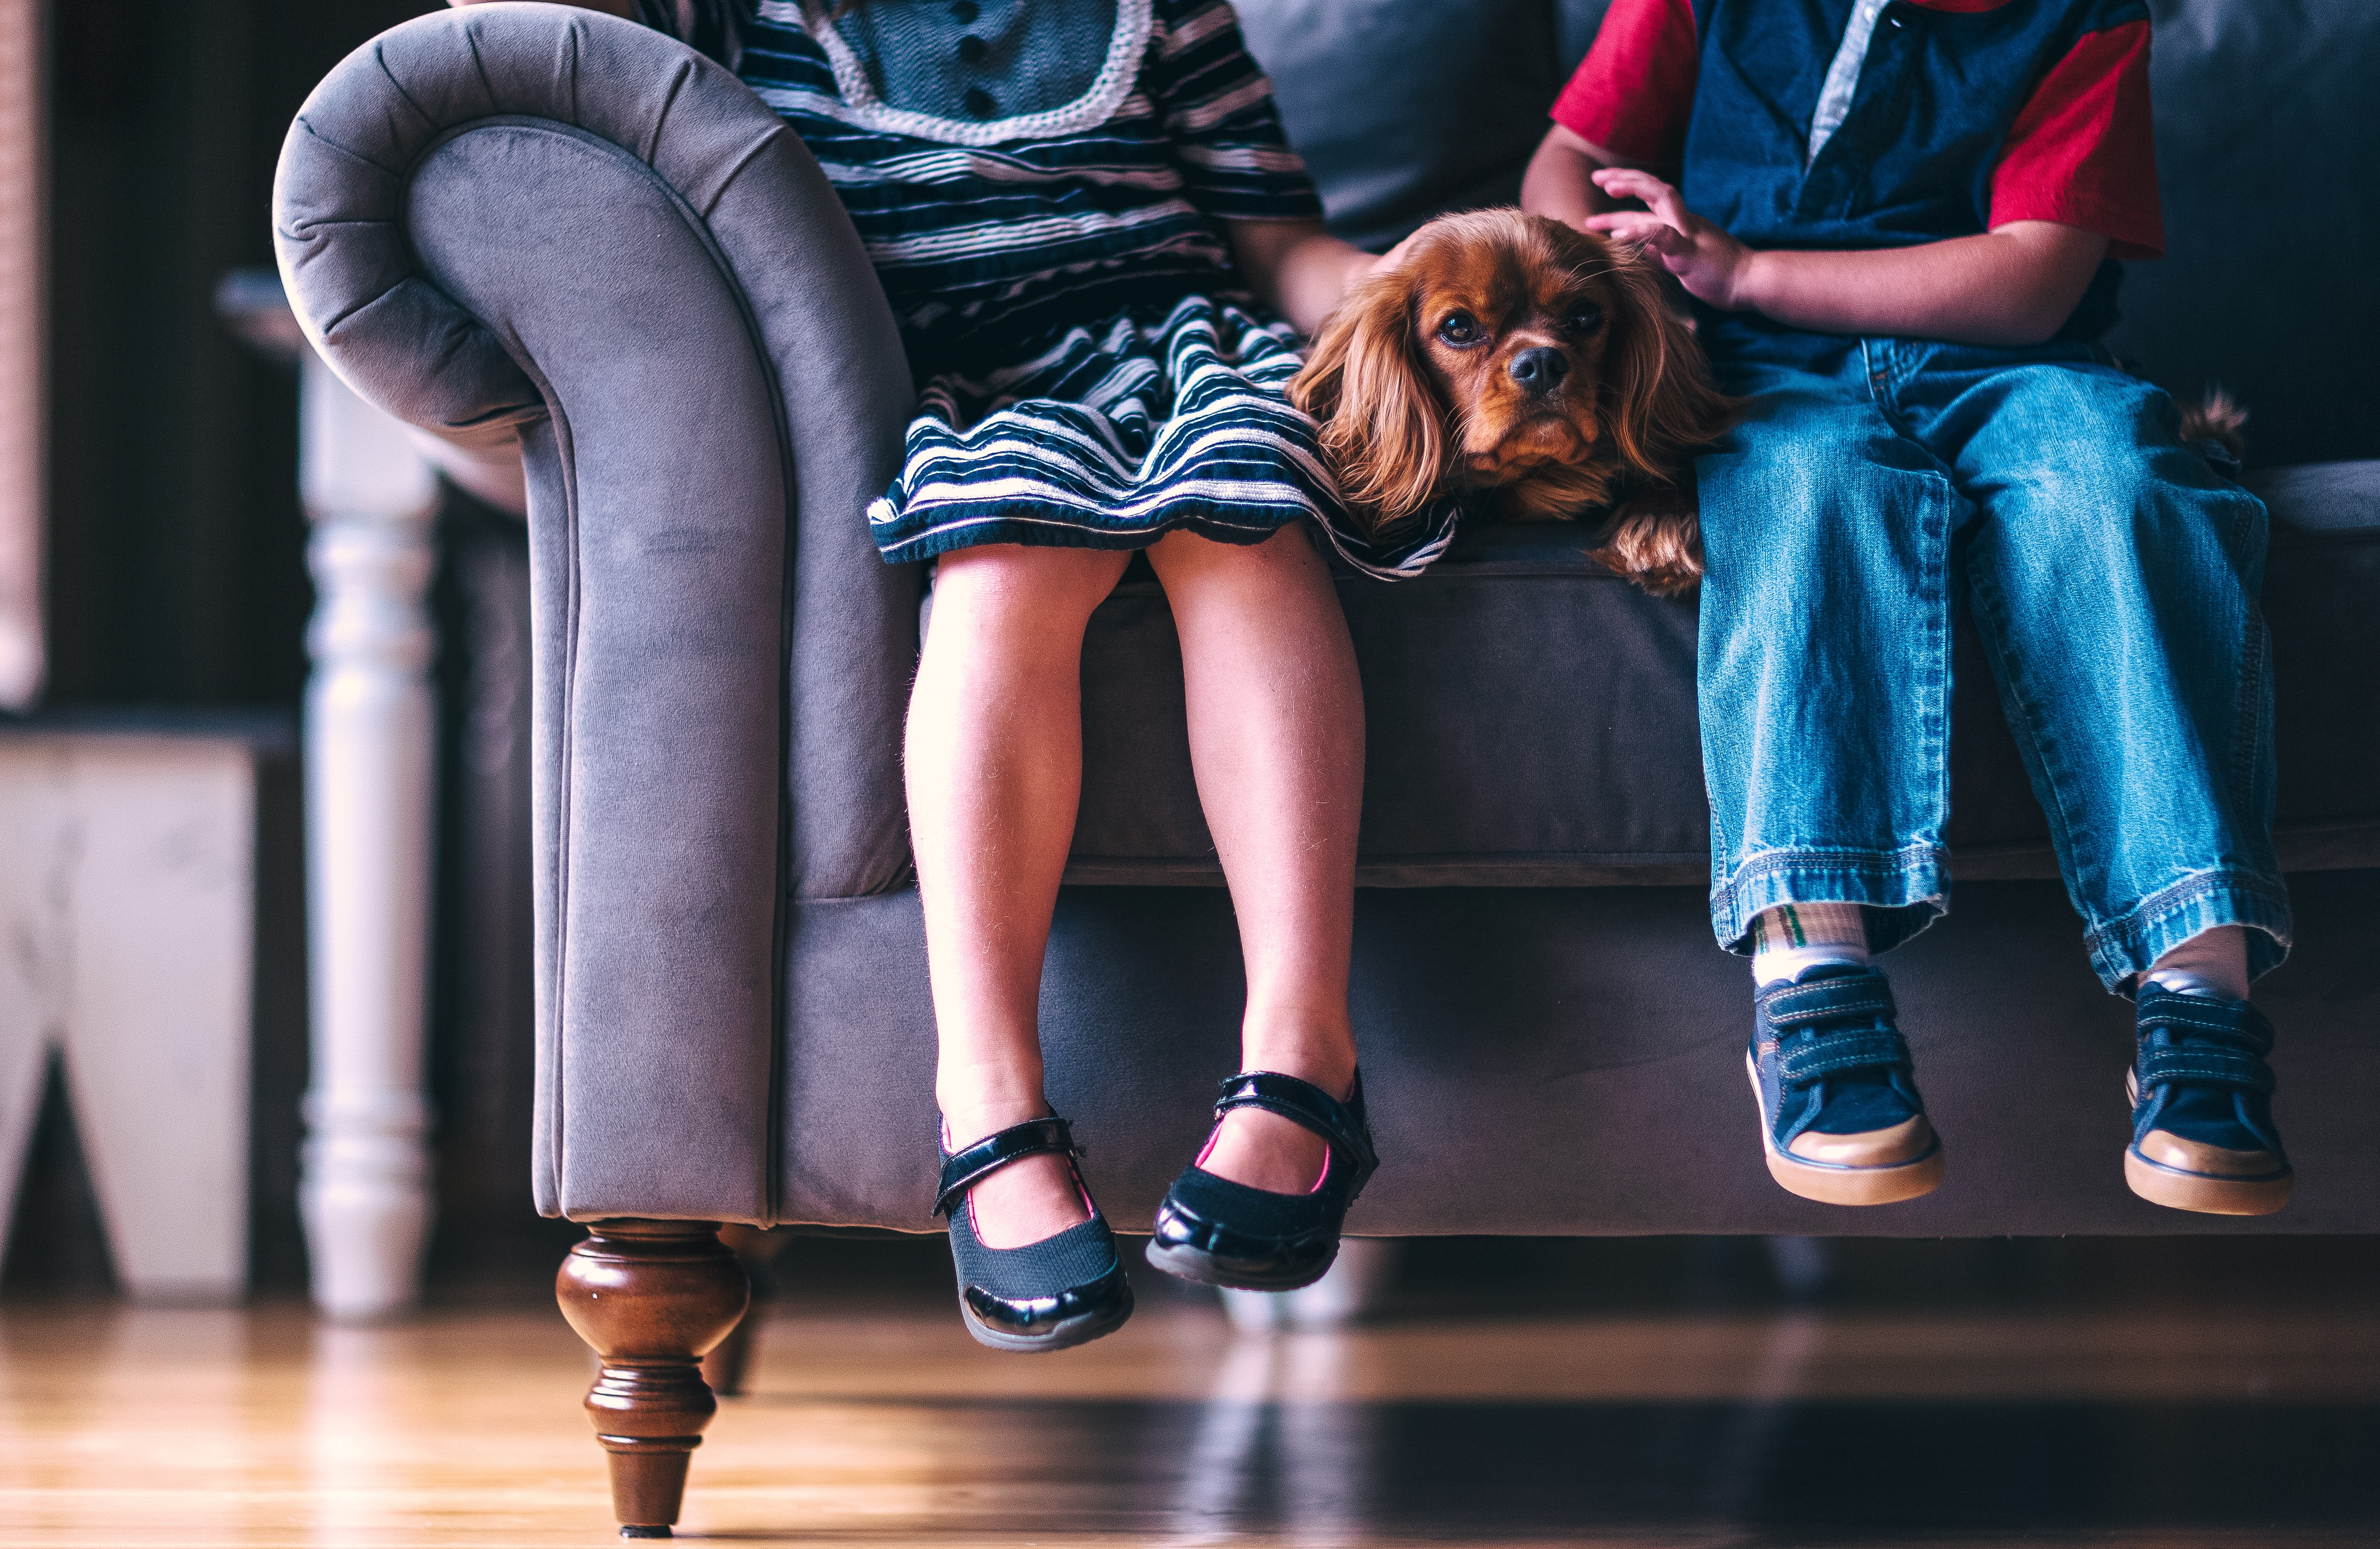 Two children on a couch are pictured shoulders down with a spaniel between them